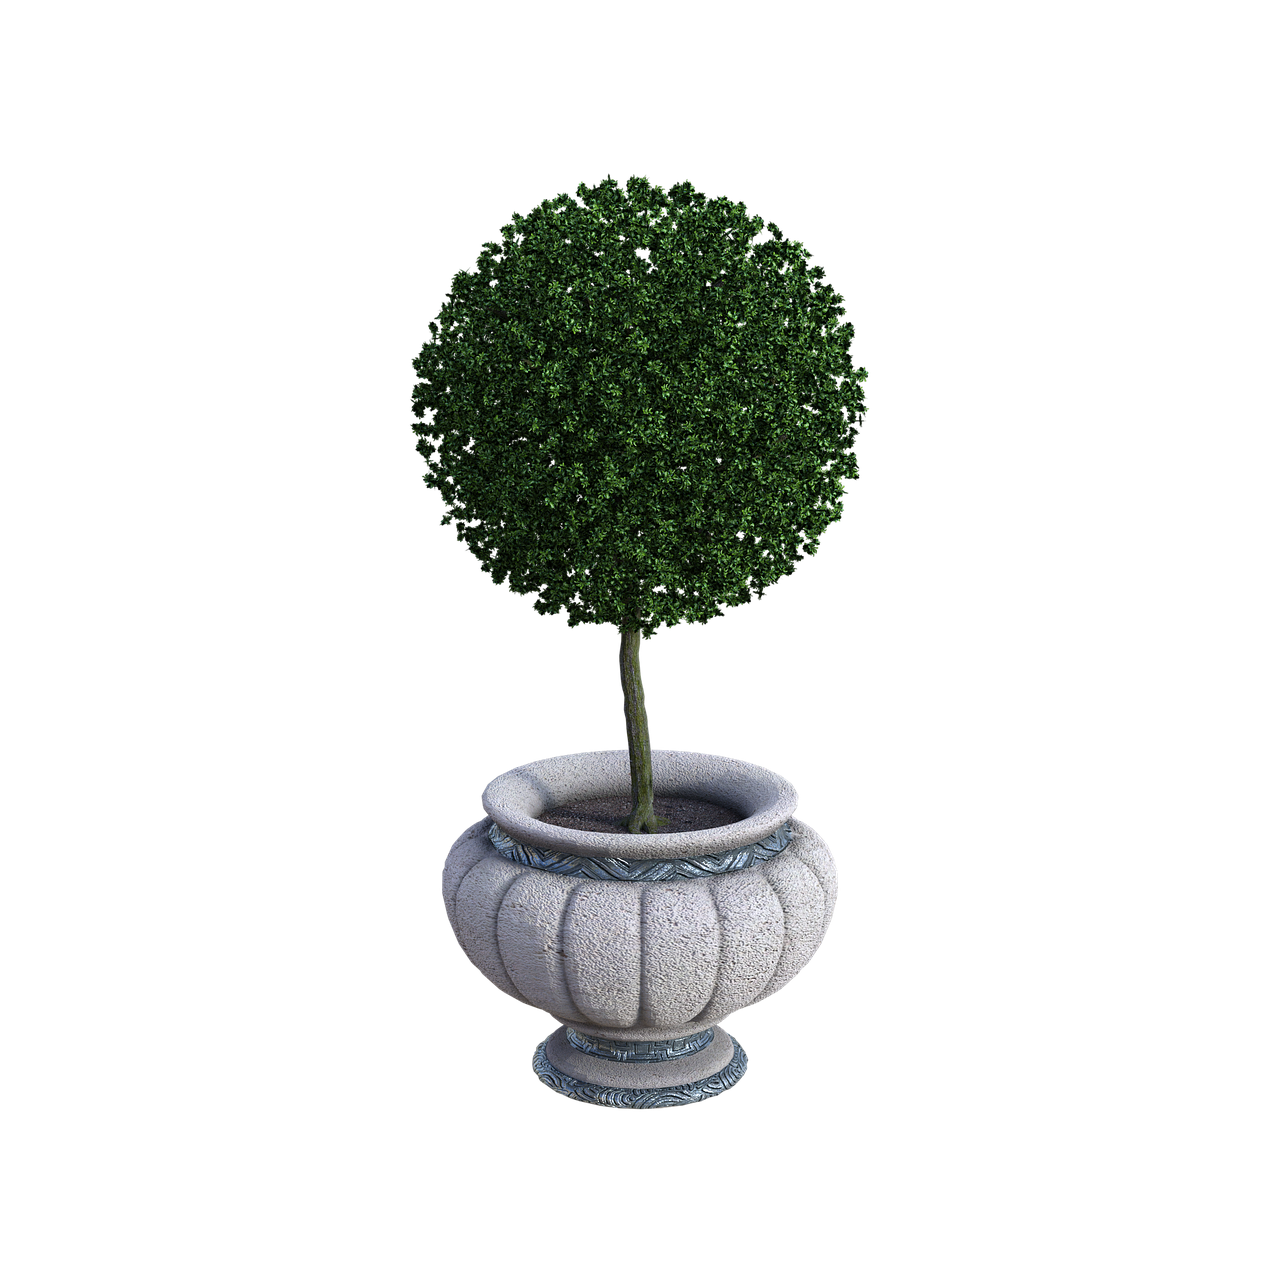 potted plant, trimmed, pot